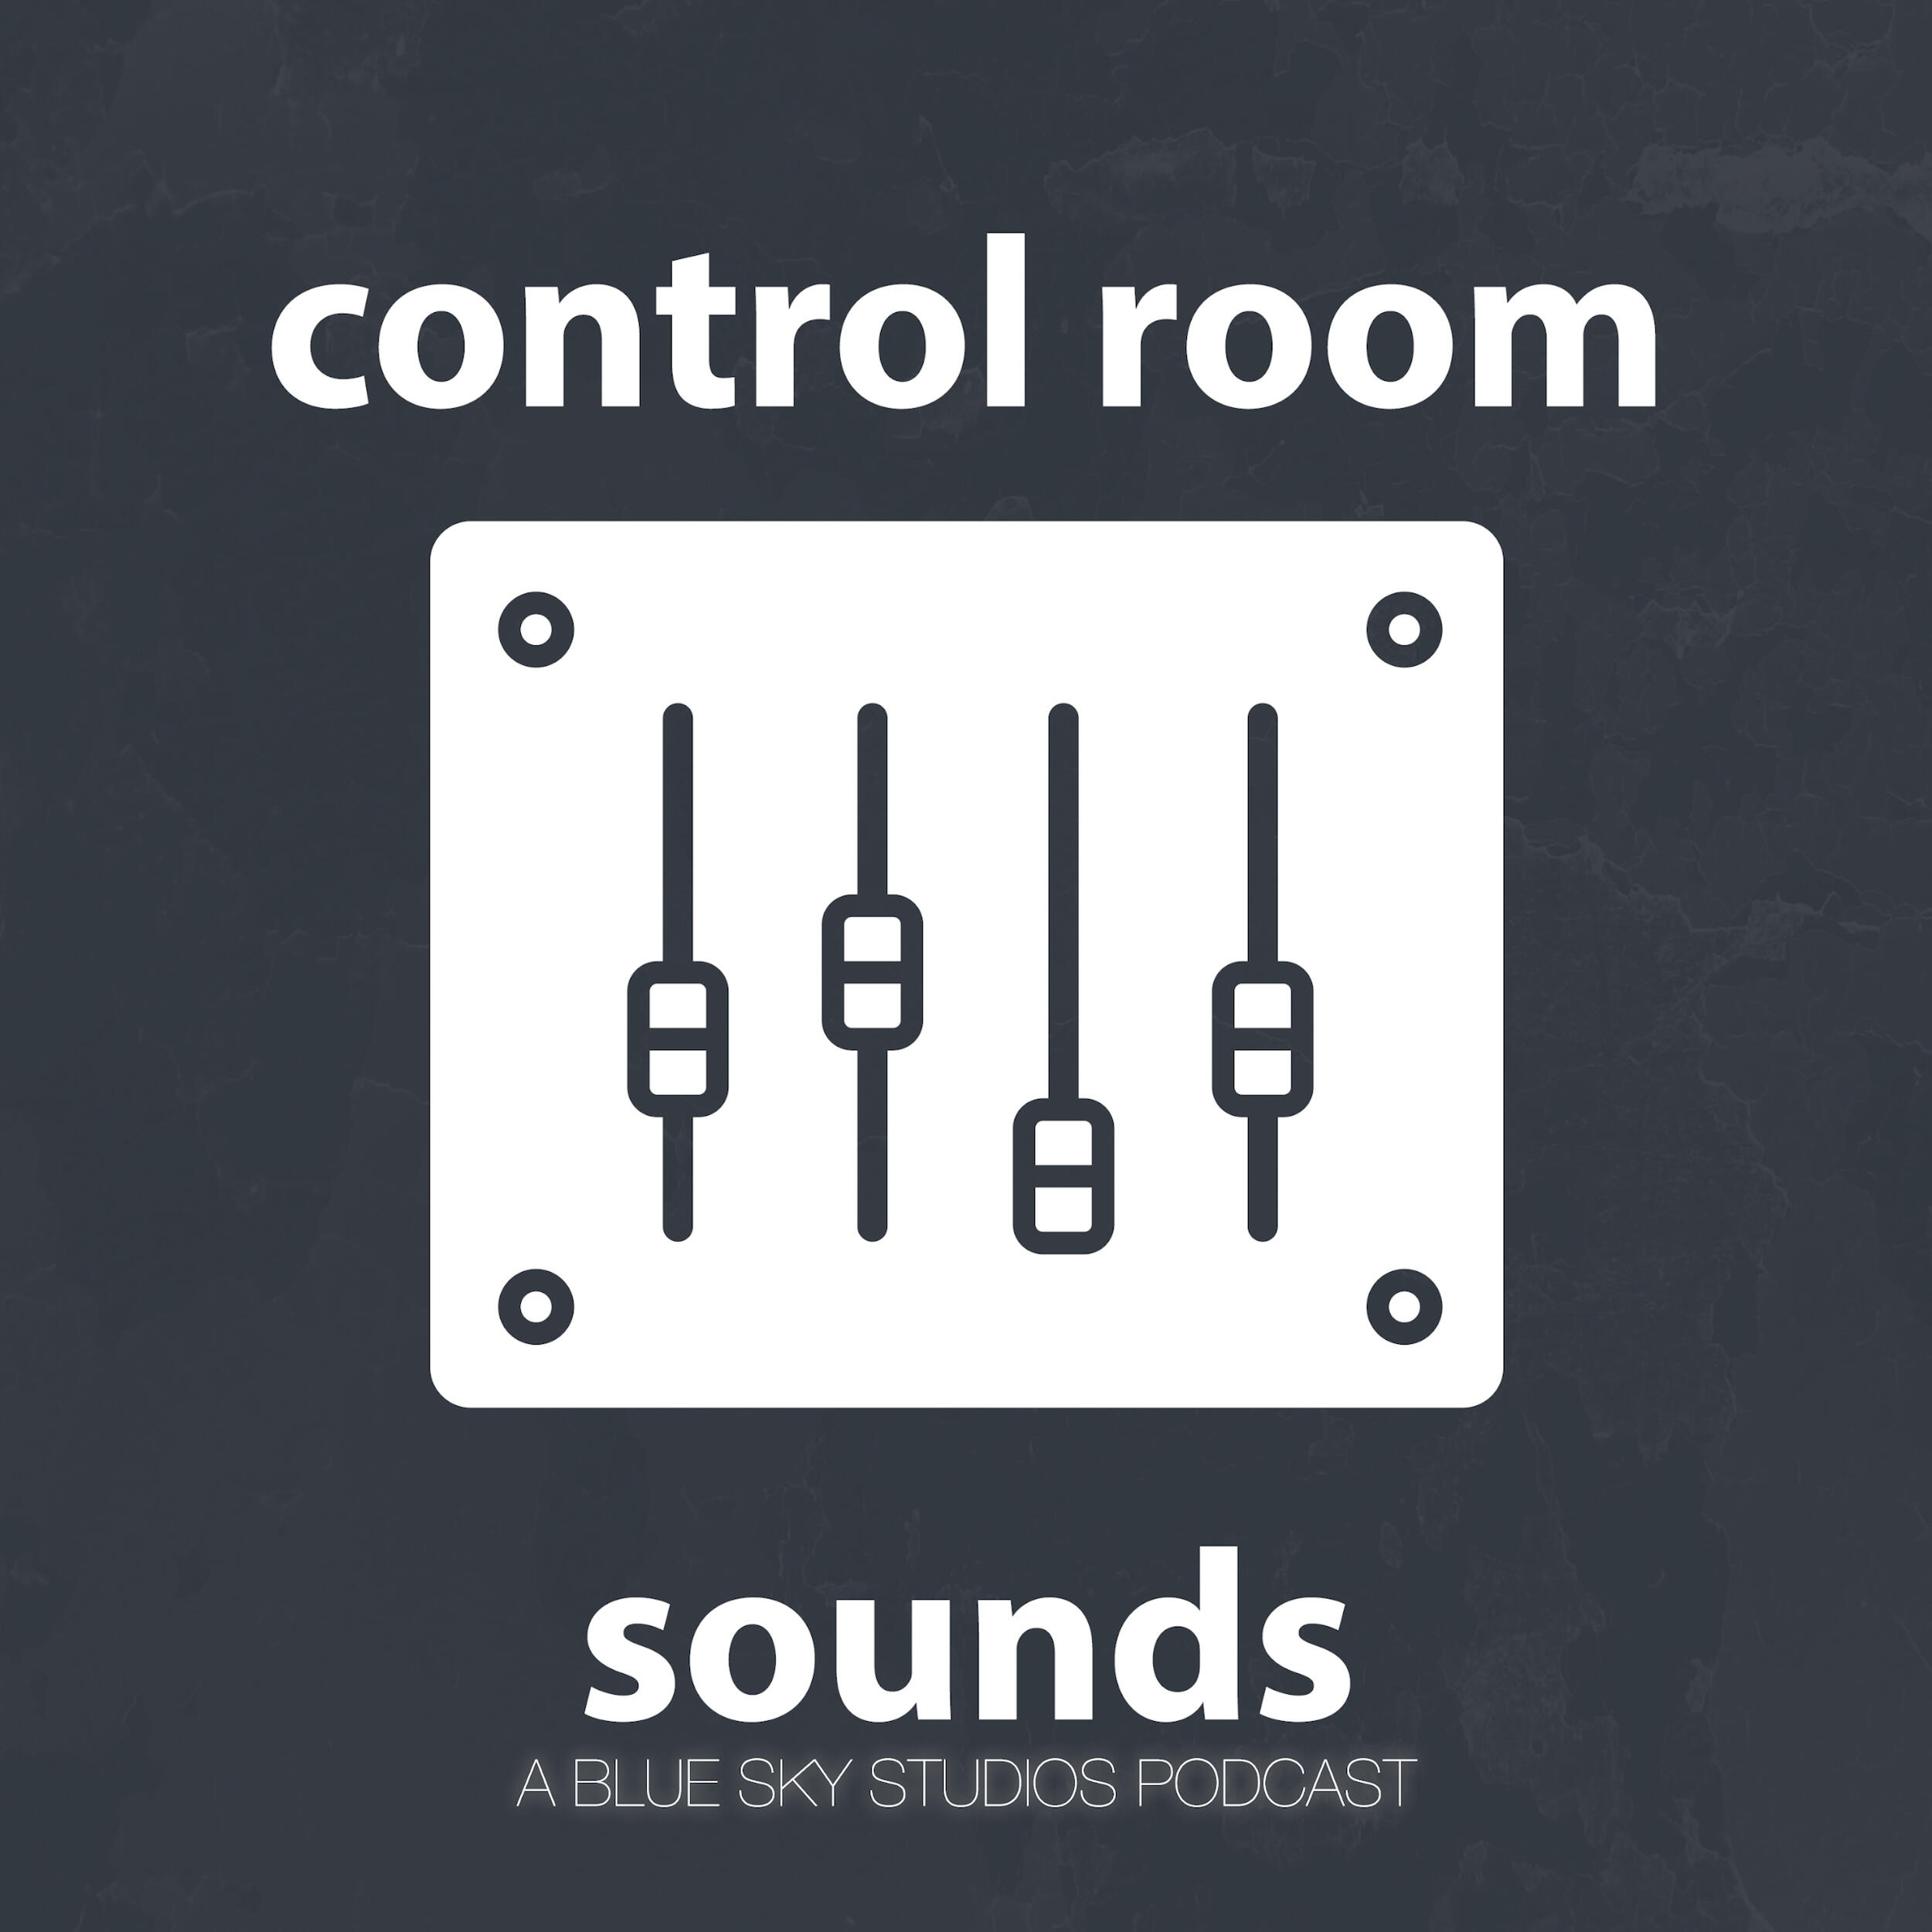 Listen Free to Control Room Sounds on iHeartRadio Podcasts